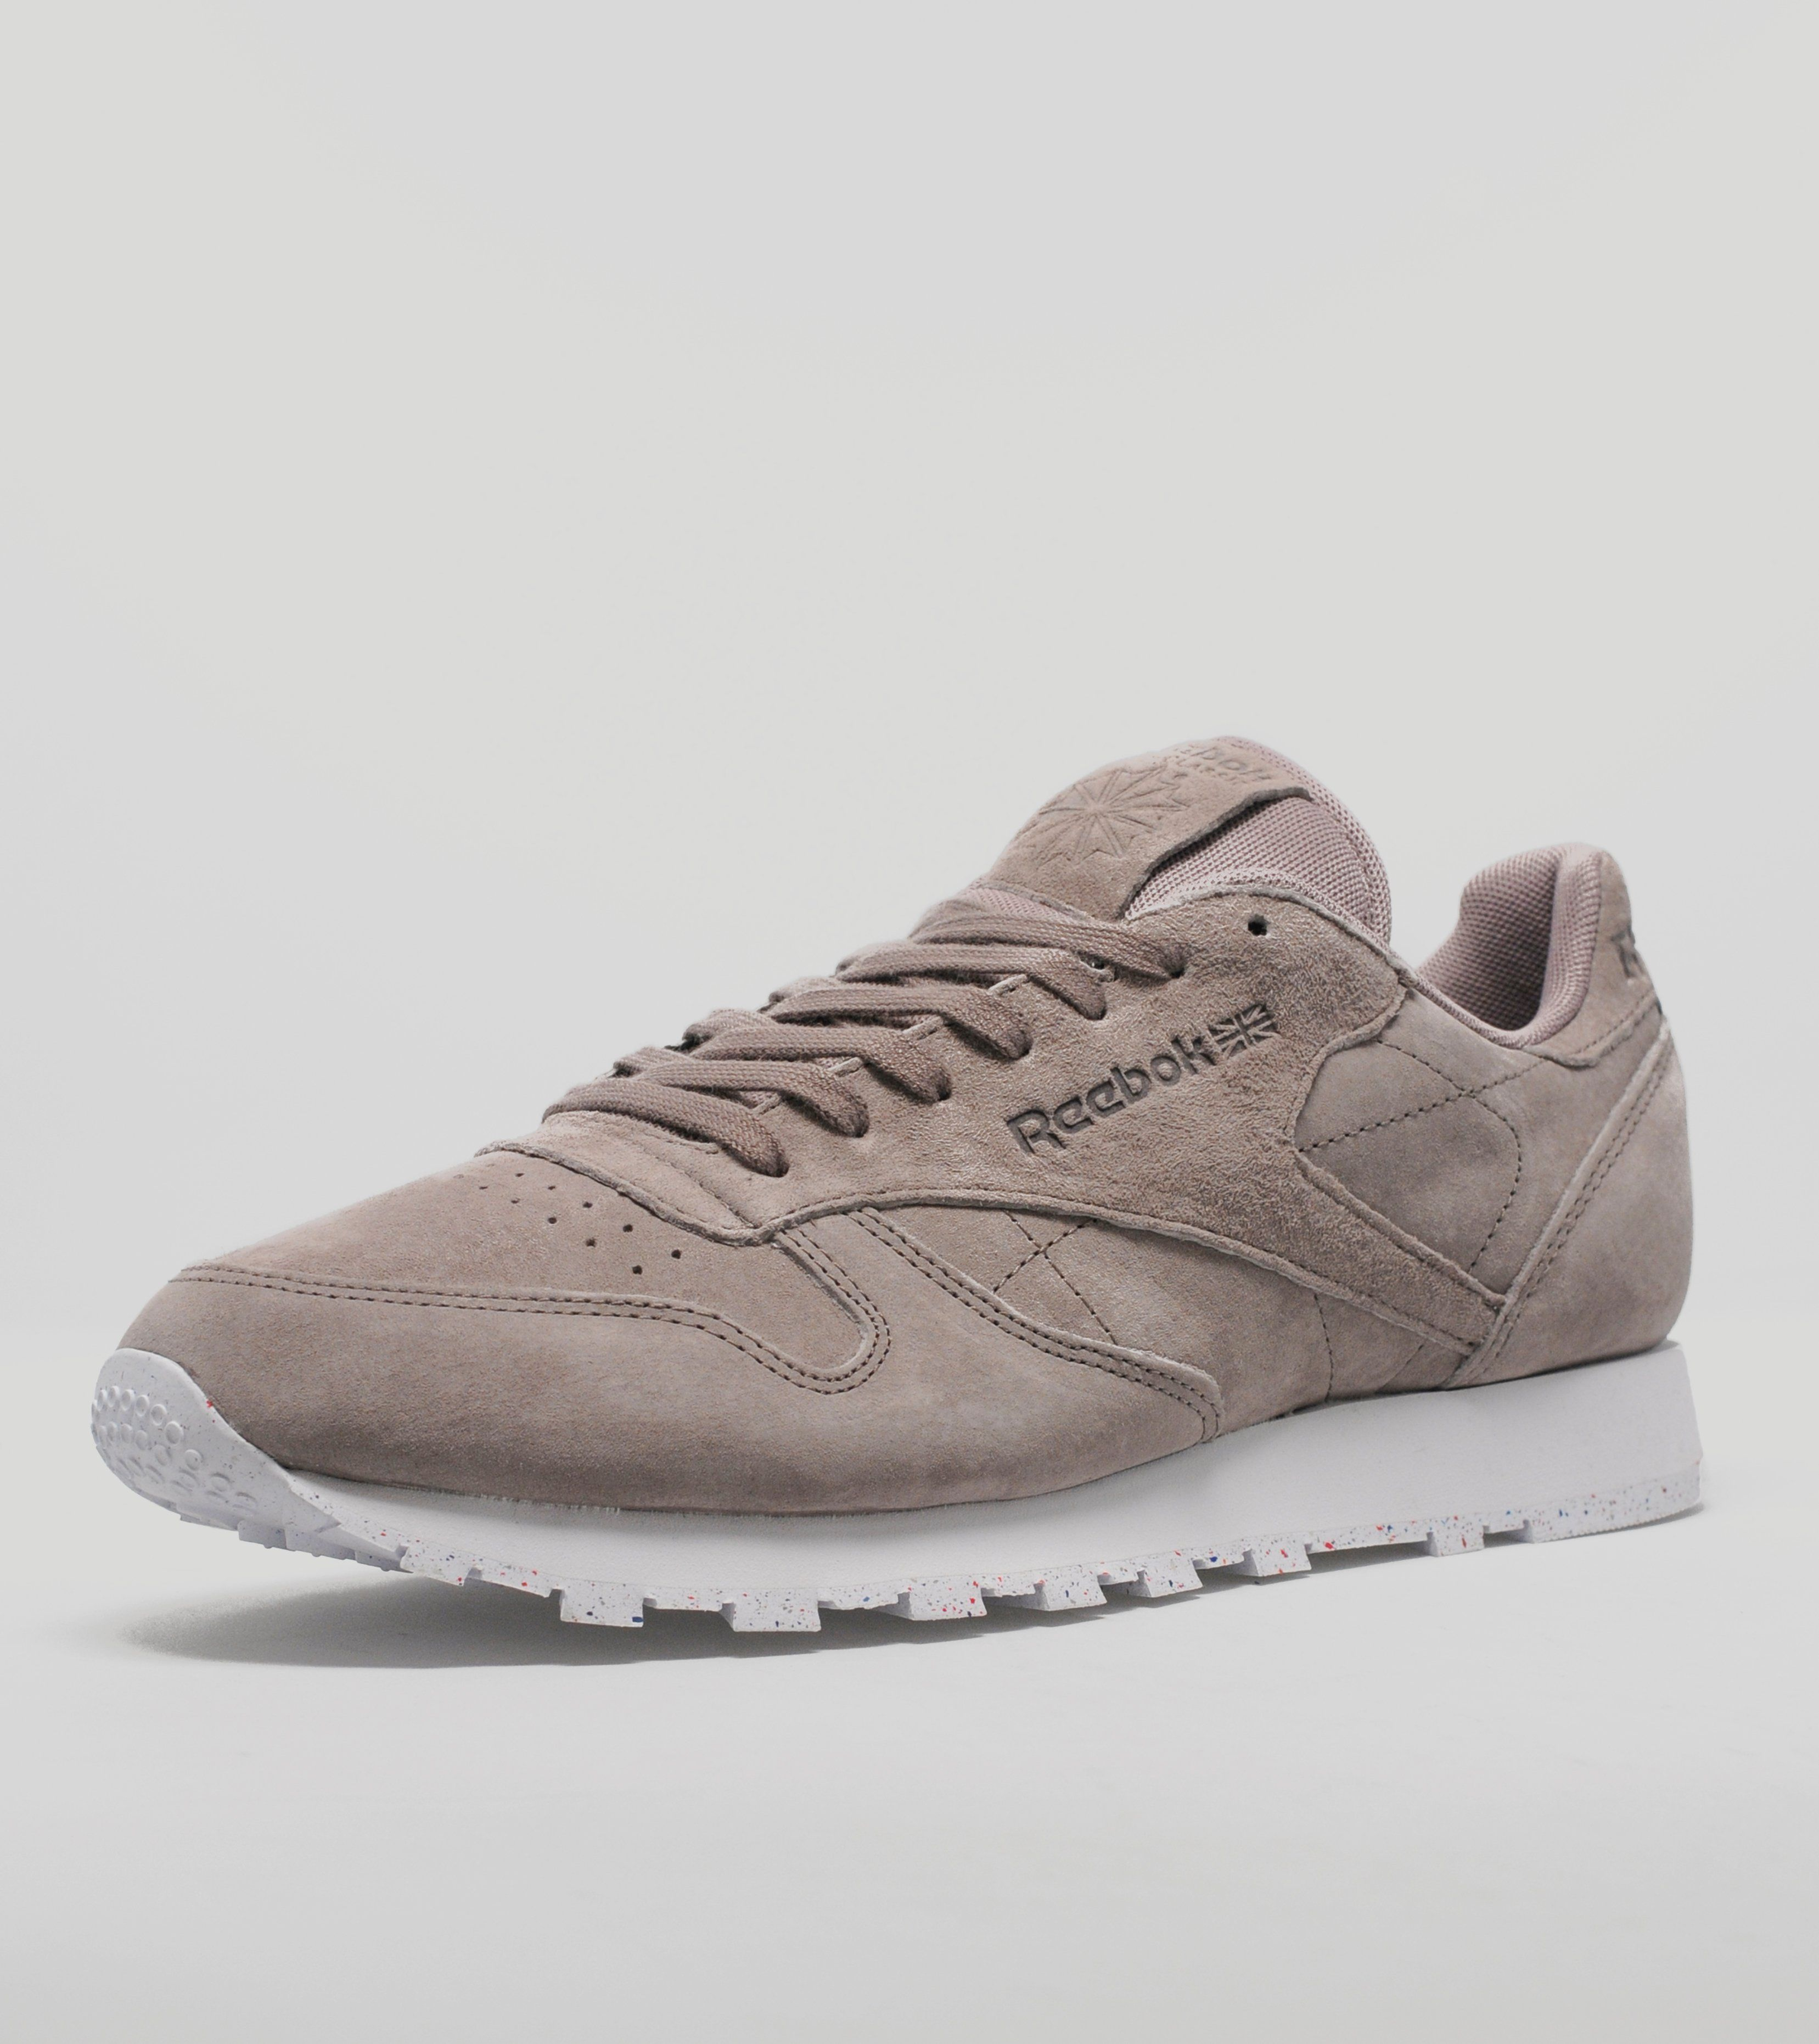 new products ae5c4 2fddd ... lux horween 2 Reebok Classic Leather Gelato Pack ...